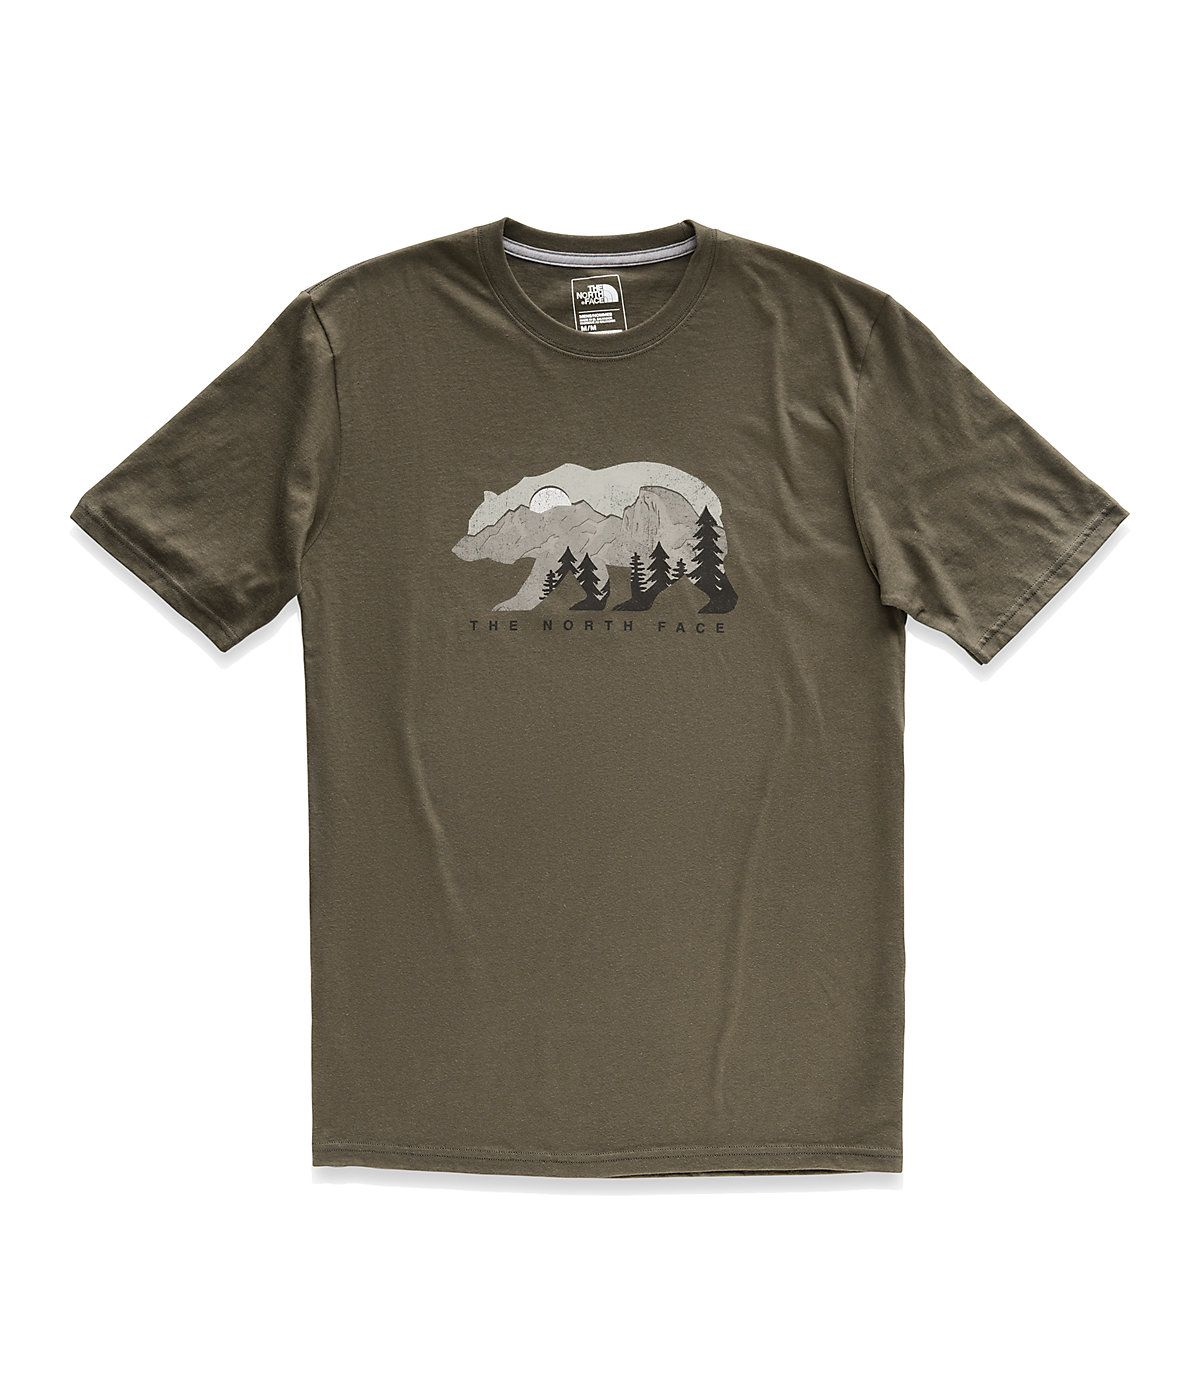 bf427a9b2 The North Face Men's Short Sleeve Bearitage Rights T-Shirt in 2019 ...